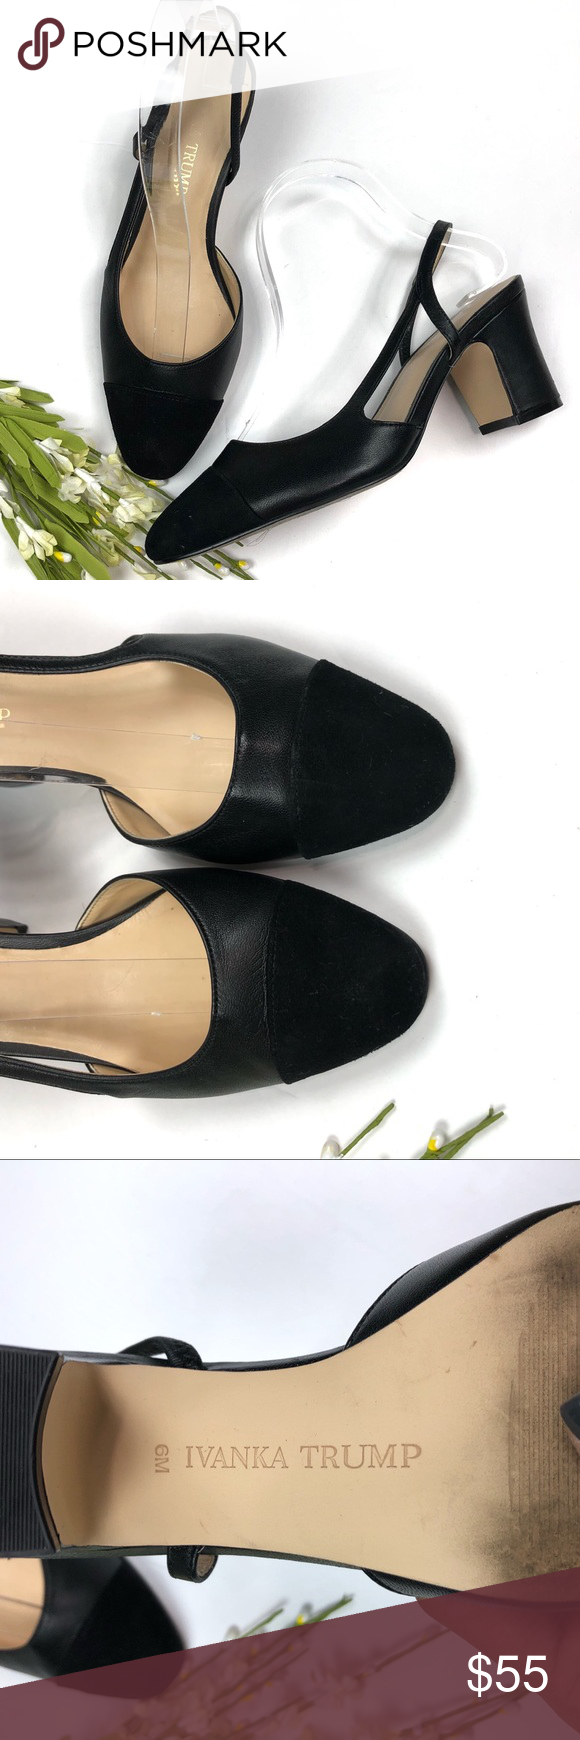 bb1bc6073f Ivanka Trump Black Liah Slingback Heels In excellent preowned condition. No  flaws. Minimal wear